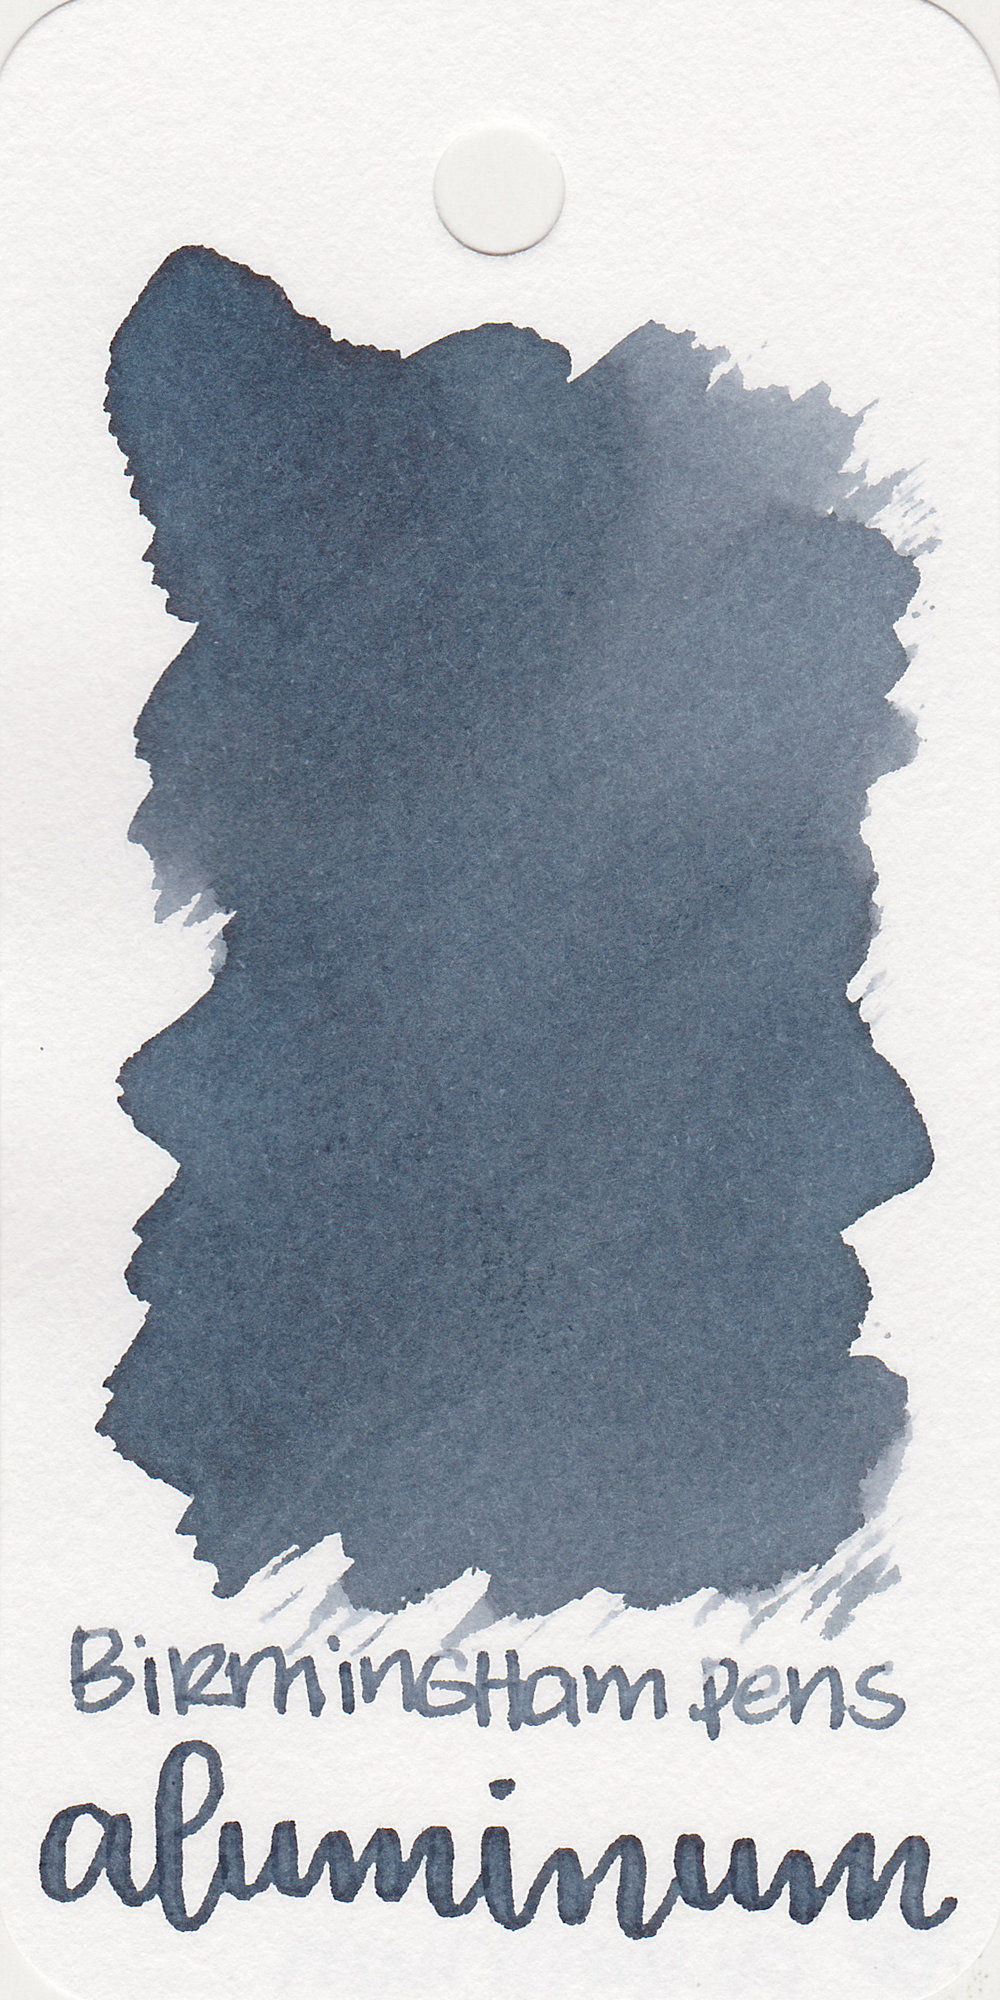 The color: - Aluminum is a dusty blue, not quite grey. When wet, the ink appears darker and lightens as it dries.